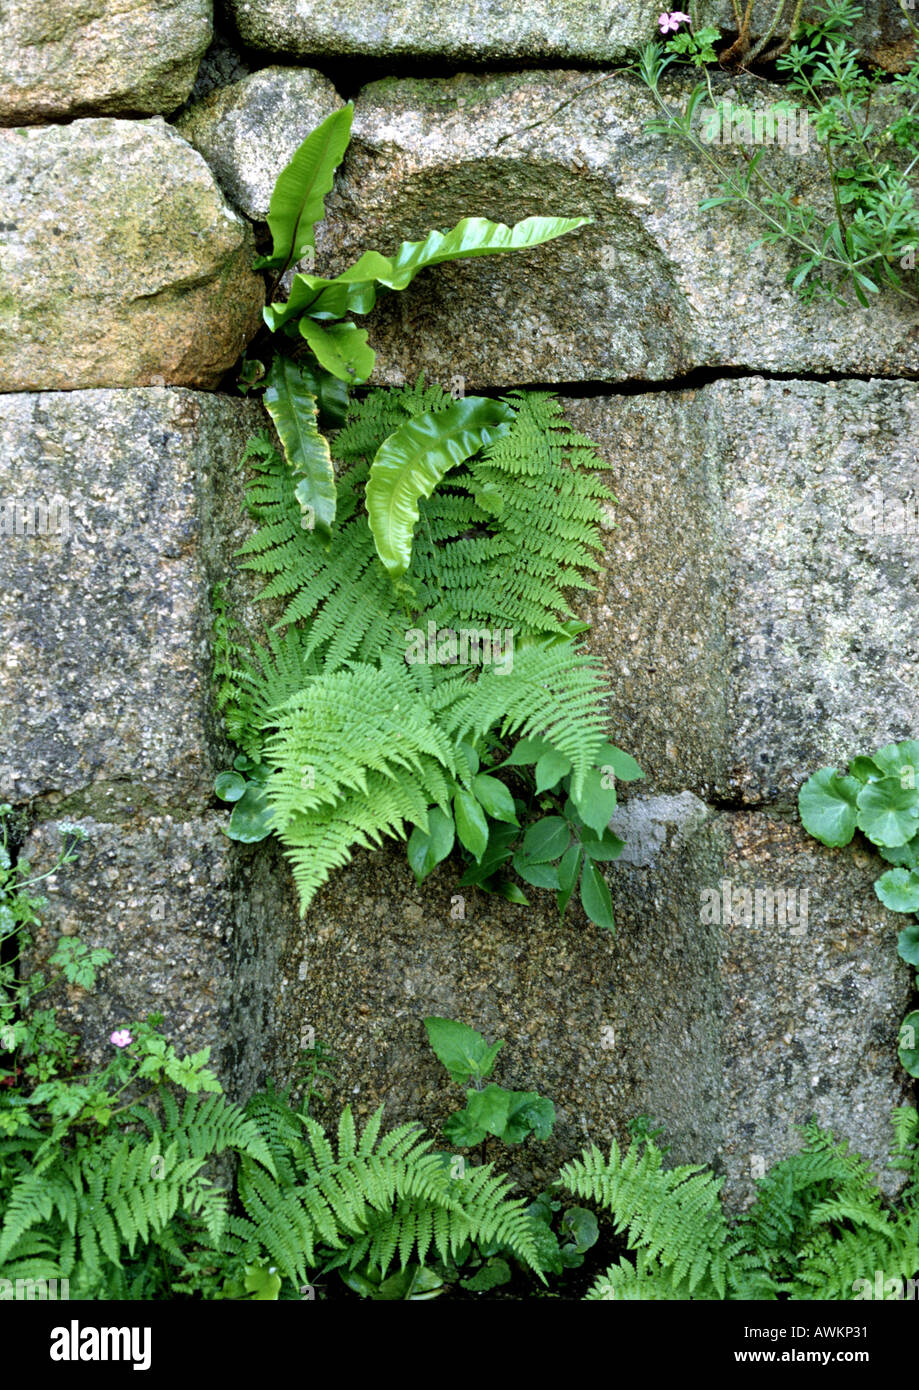 Plants Growing Through Cracks In Stone Wall Stock Photo Alamy